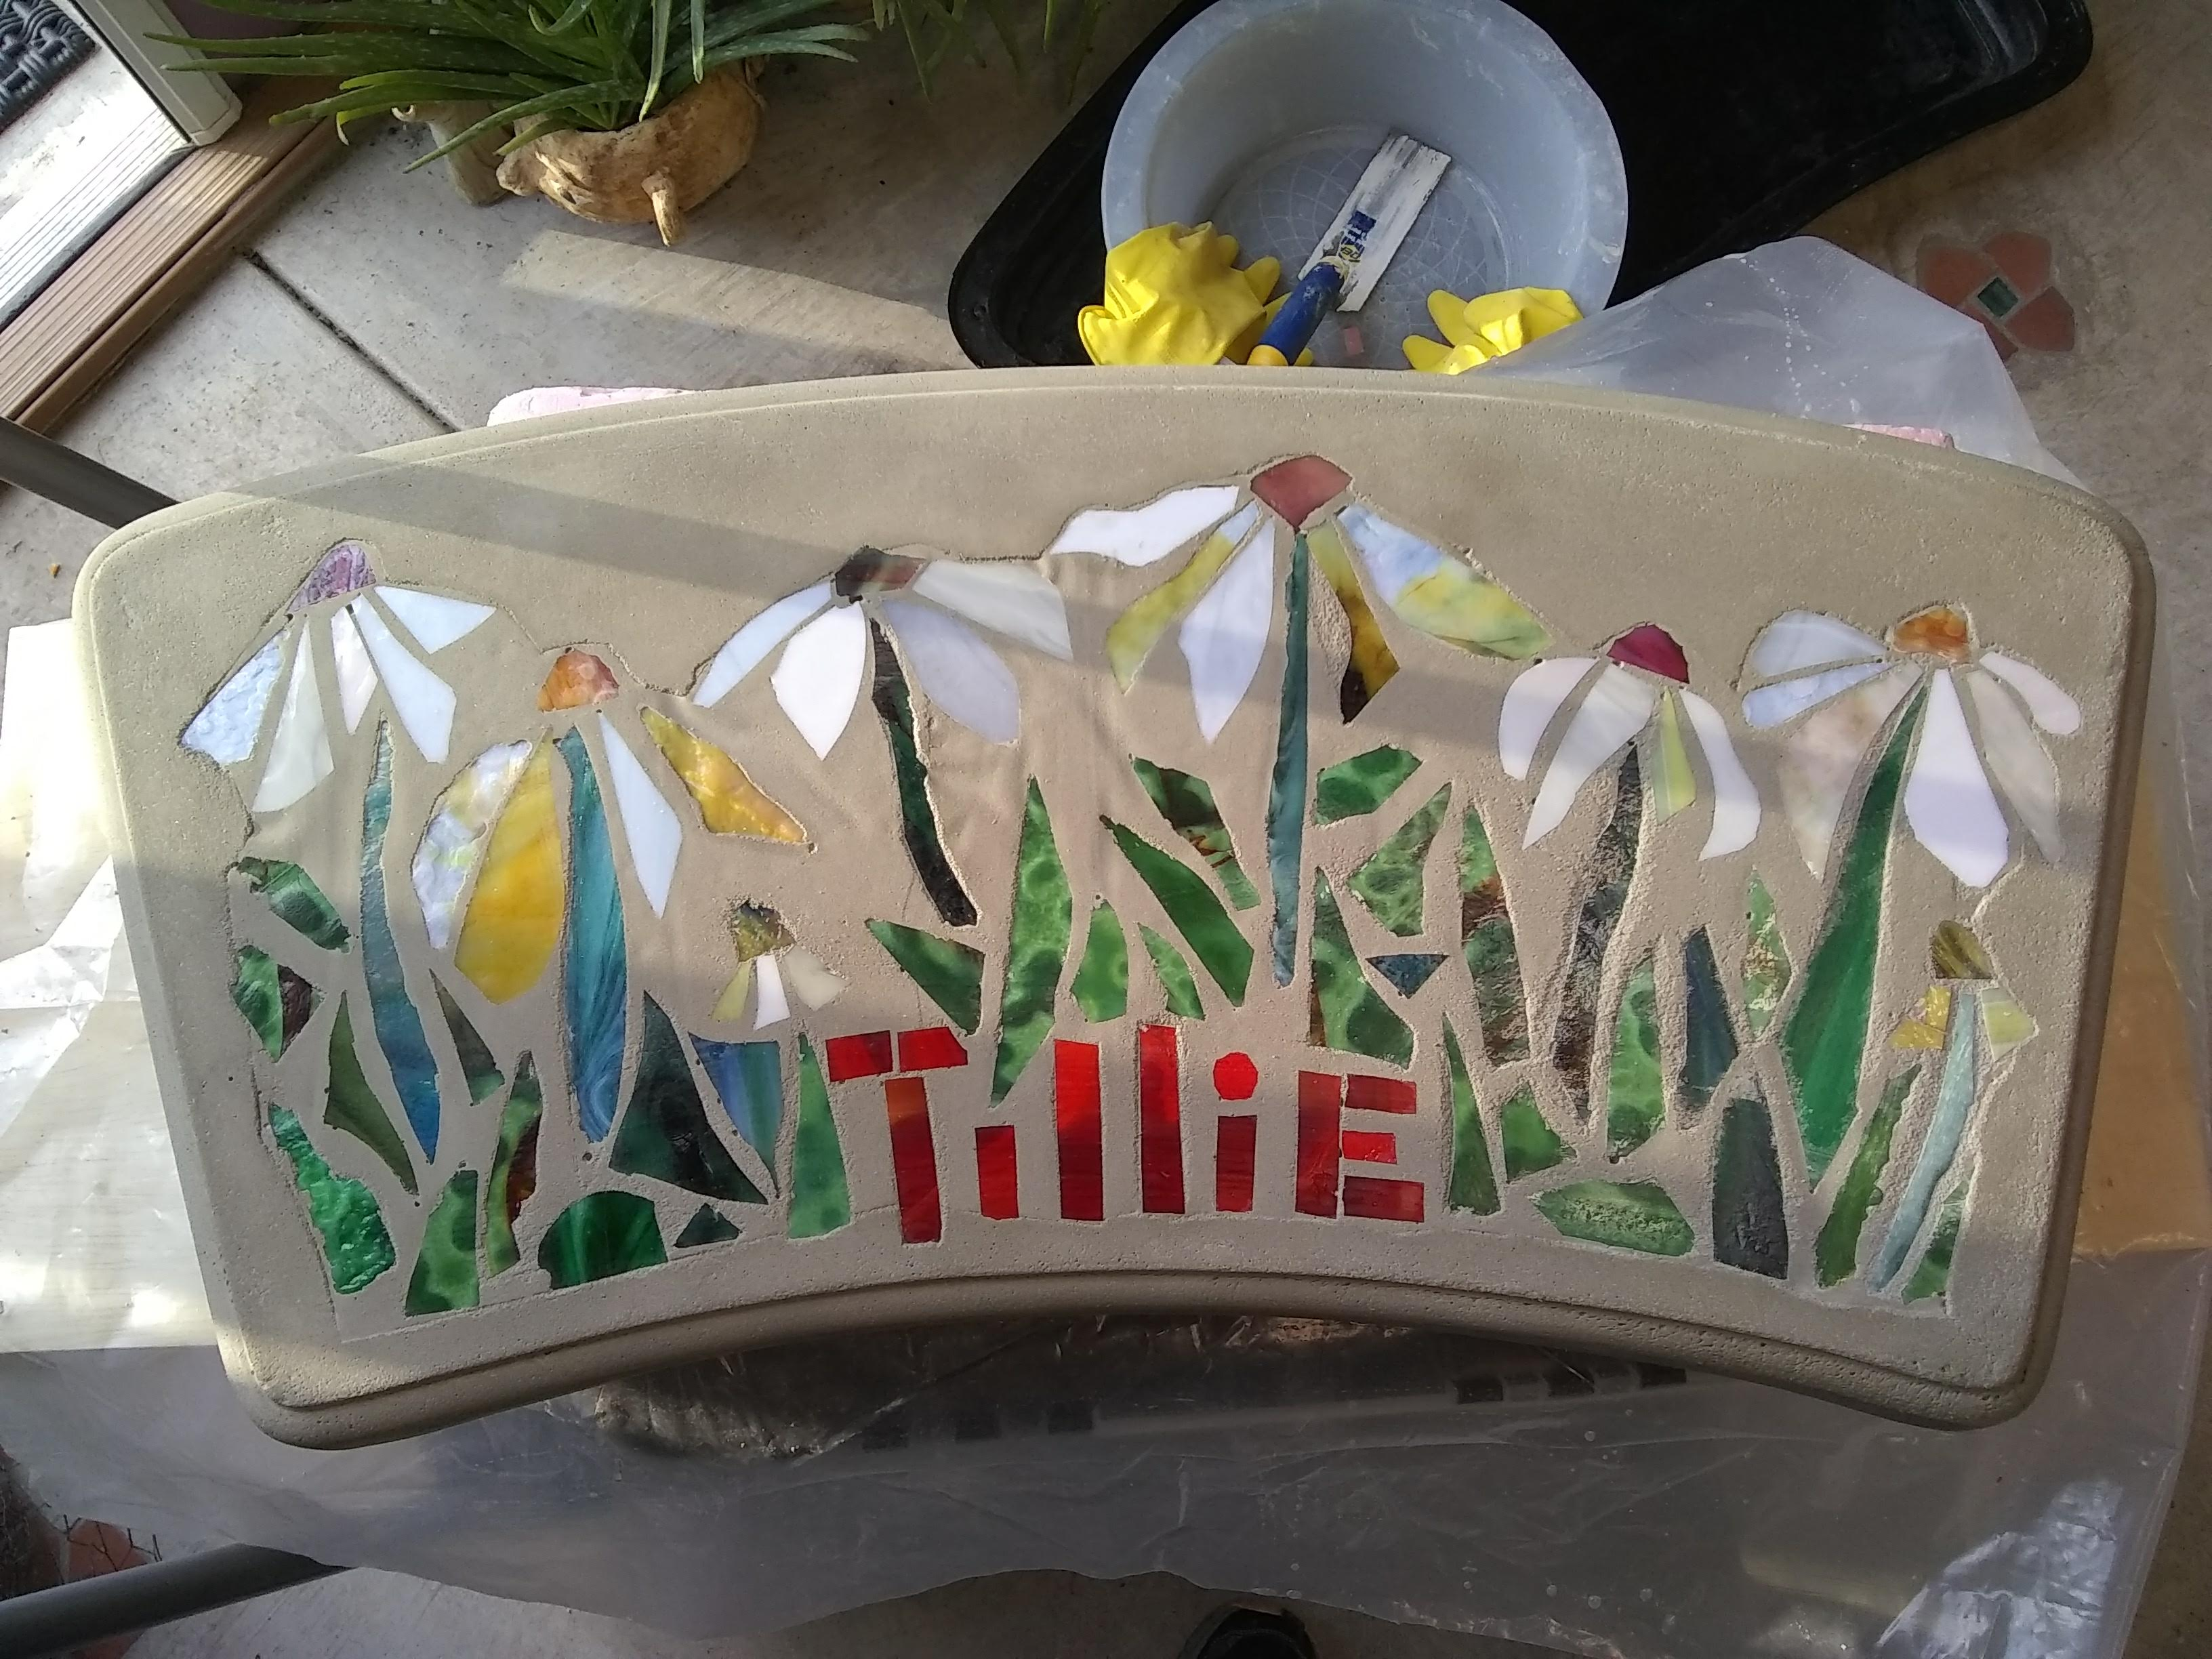 Tillie's Garden mosaic bench top by Jeannette Brossart, cast concrete glass mosaic, private commission